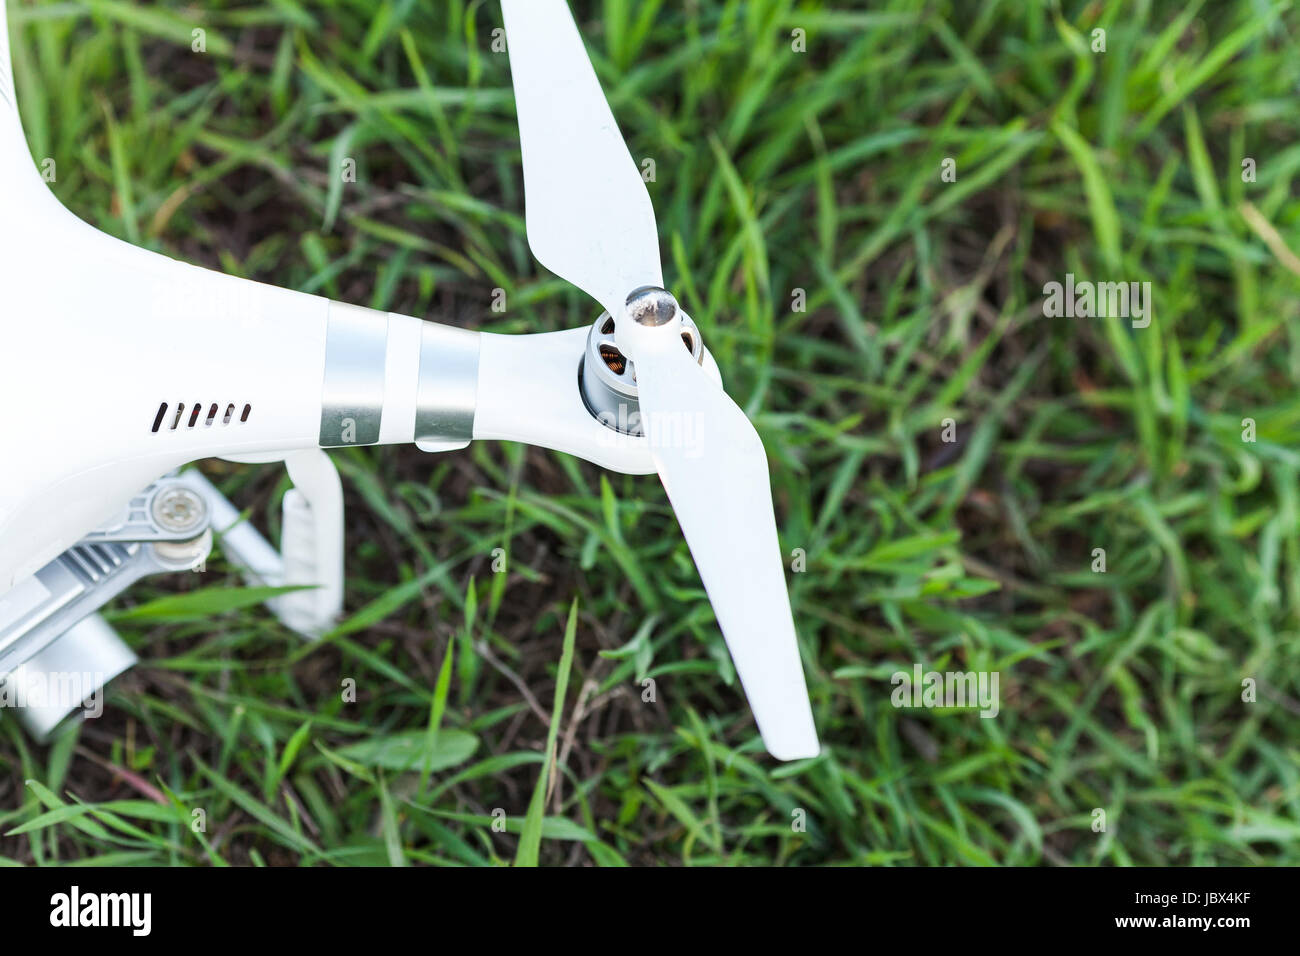 quadcopter outdoors, aerial imagery and tech hobby, recreation concept - rotor of white quadrocopter before flight - Stock Image